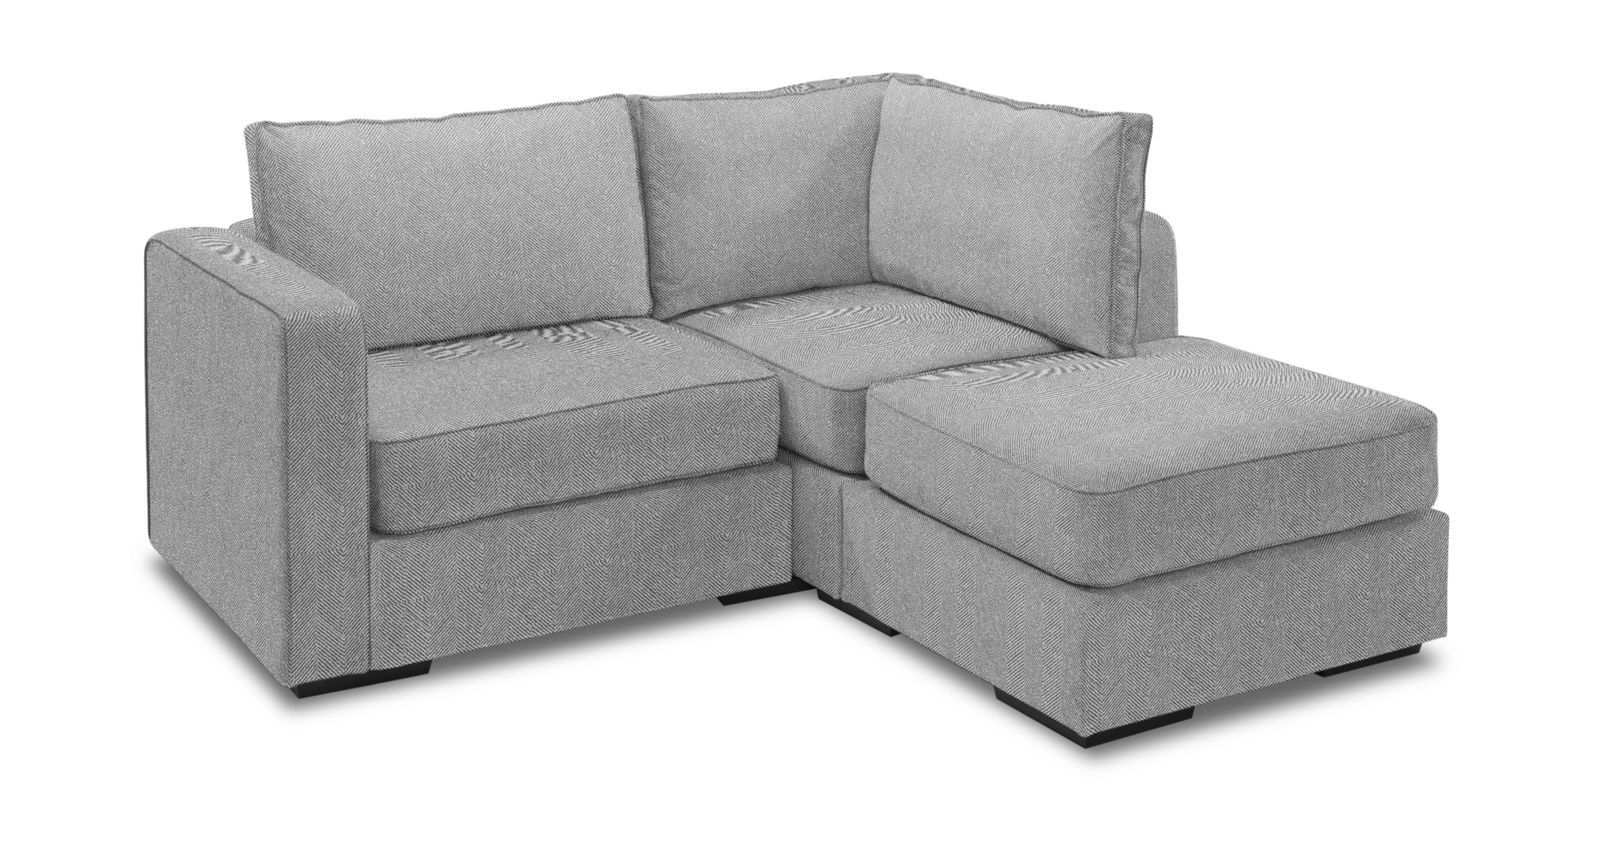 Pin By Rebecca Welch On 15b Coming Street Small Chaise Sofa